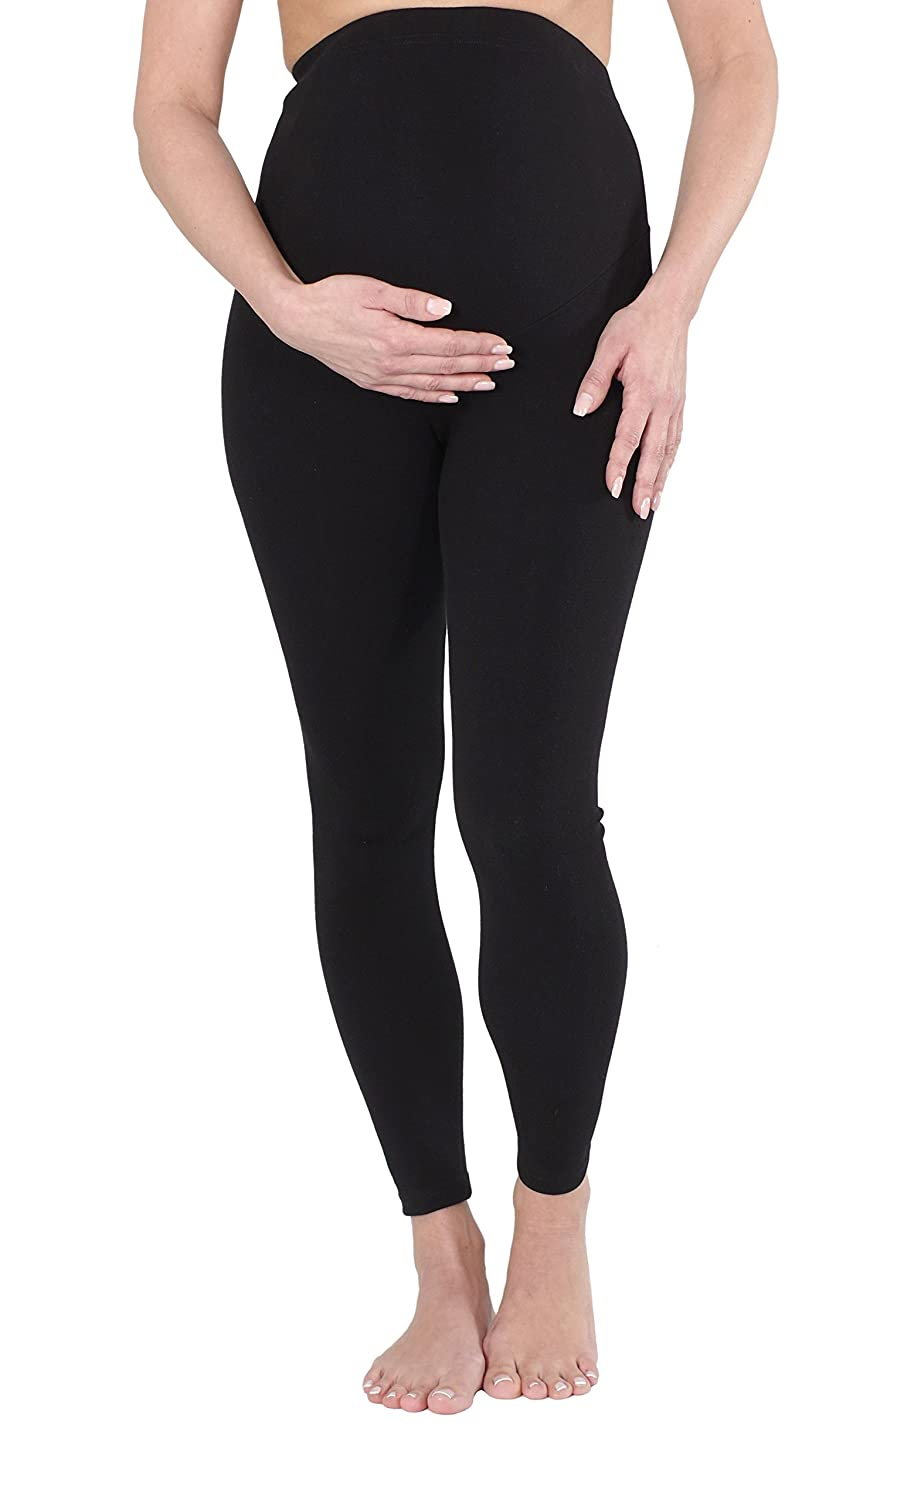 Herzmutter Black maternity-pregnancy leggings, made of cotton, lined-opaque, extra comfortable-elastic for women (1500)